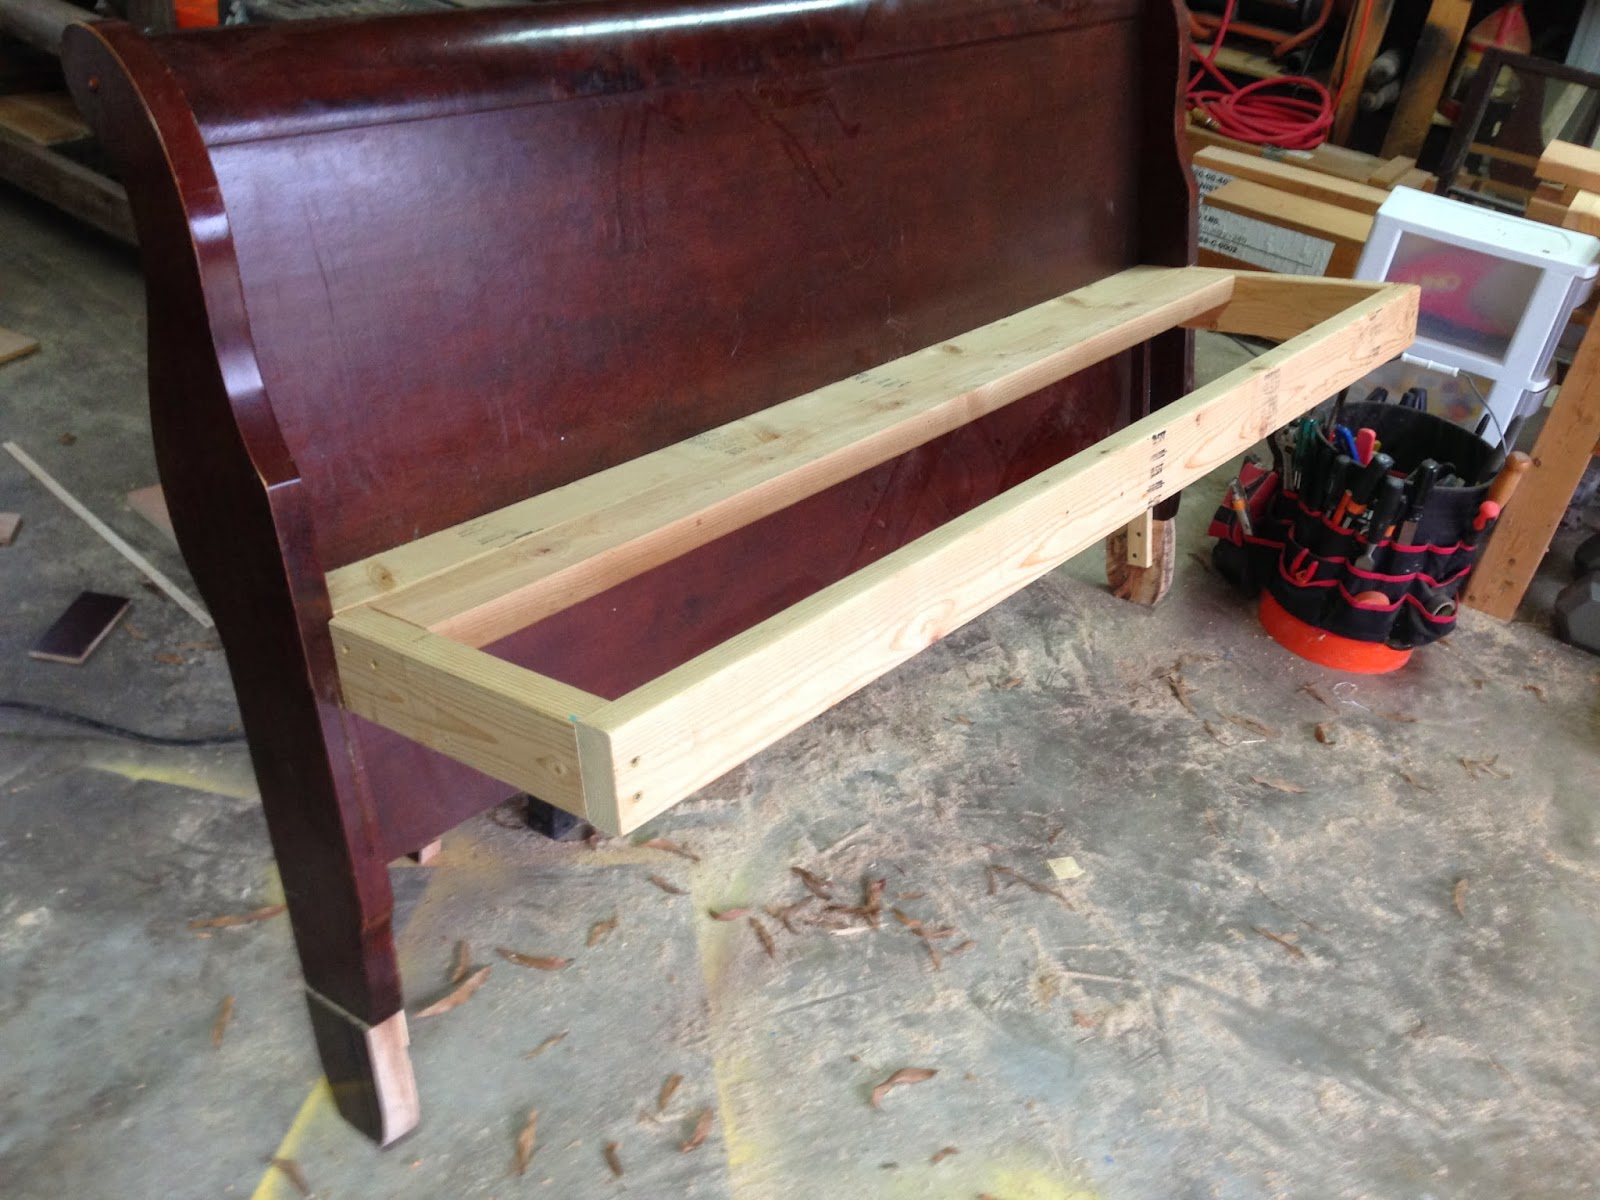 Southern Faces, Southern Places: DIY Bench from Headboard